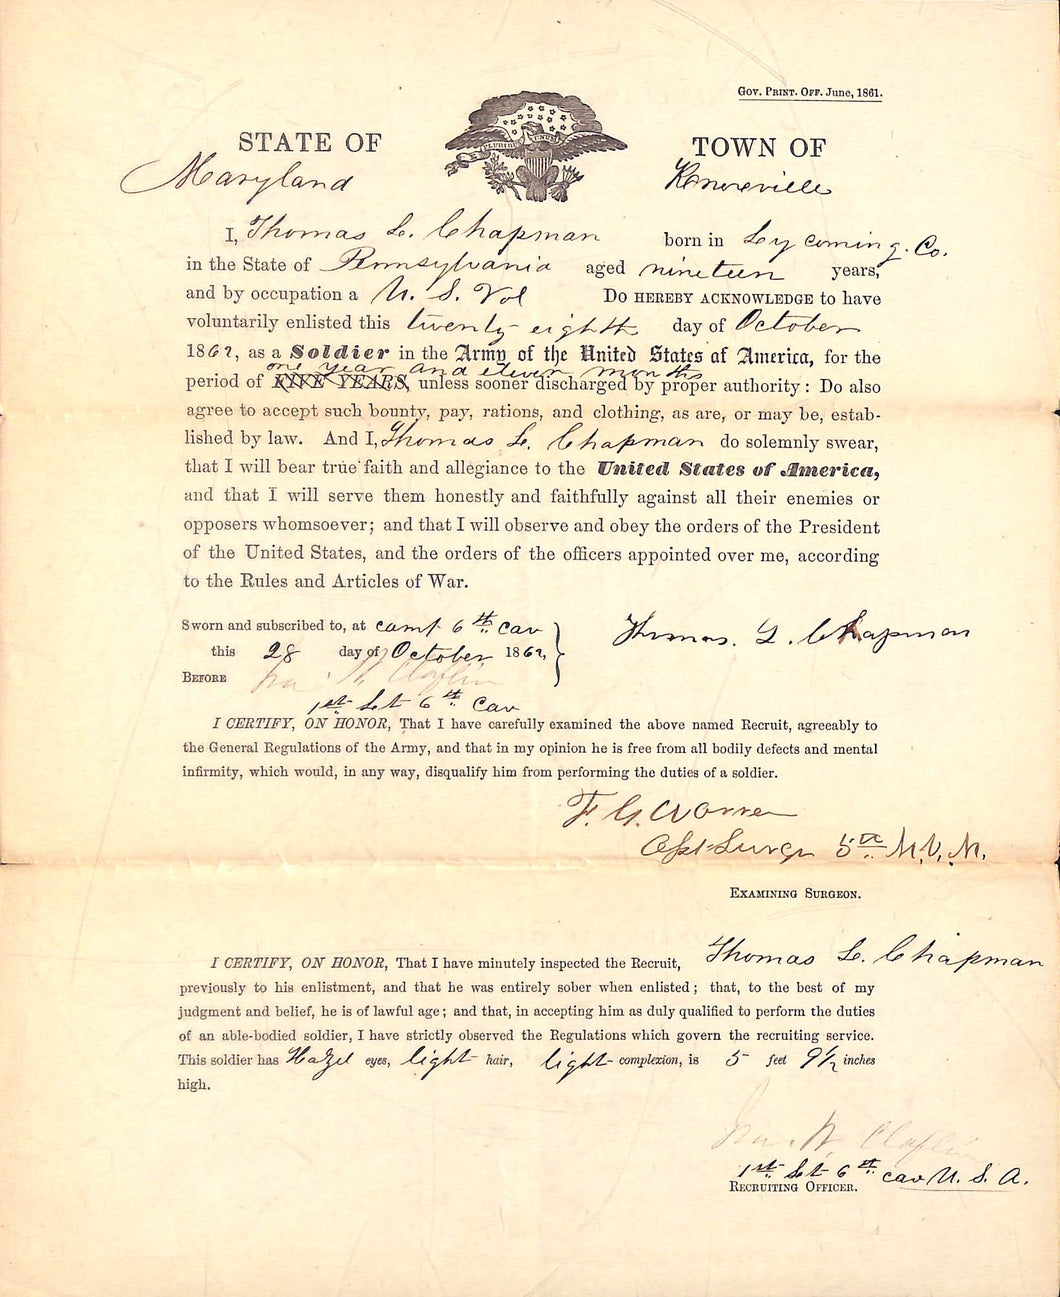 Regular army Enlistment Papers